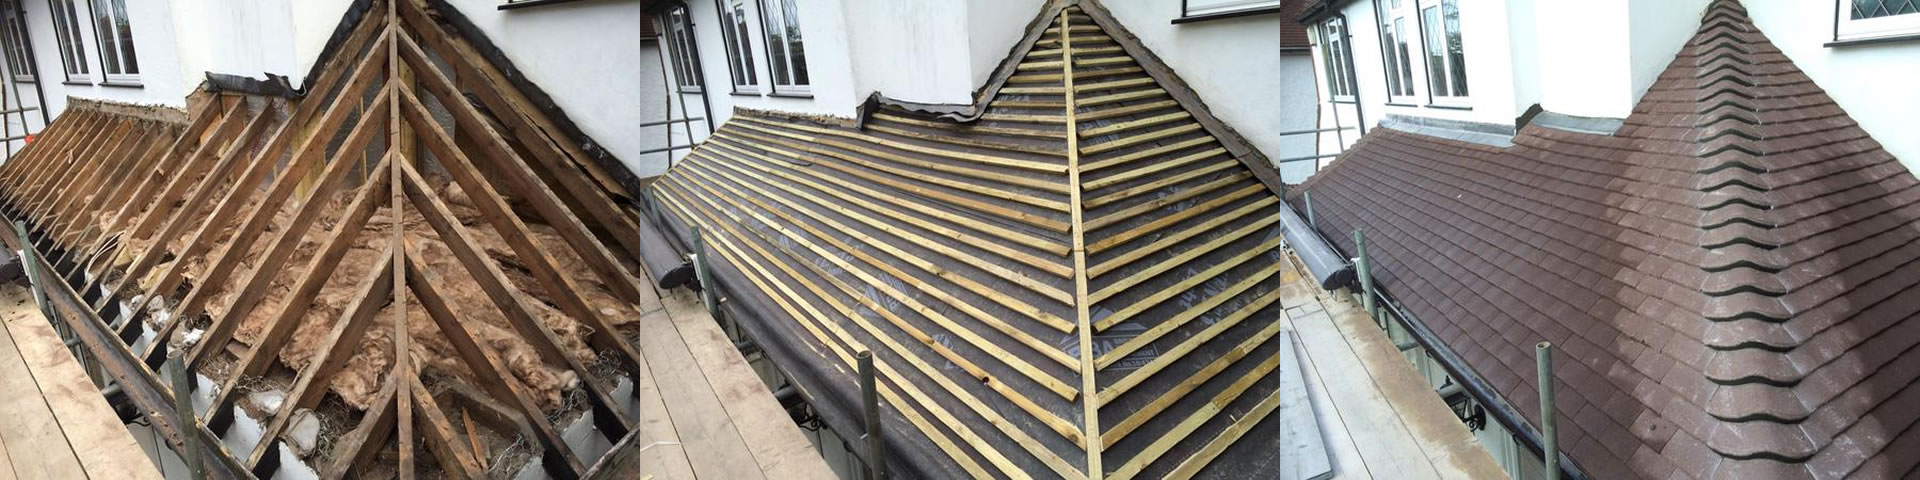 new-roof-worthing